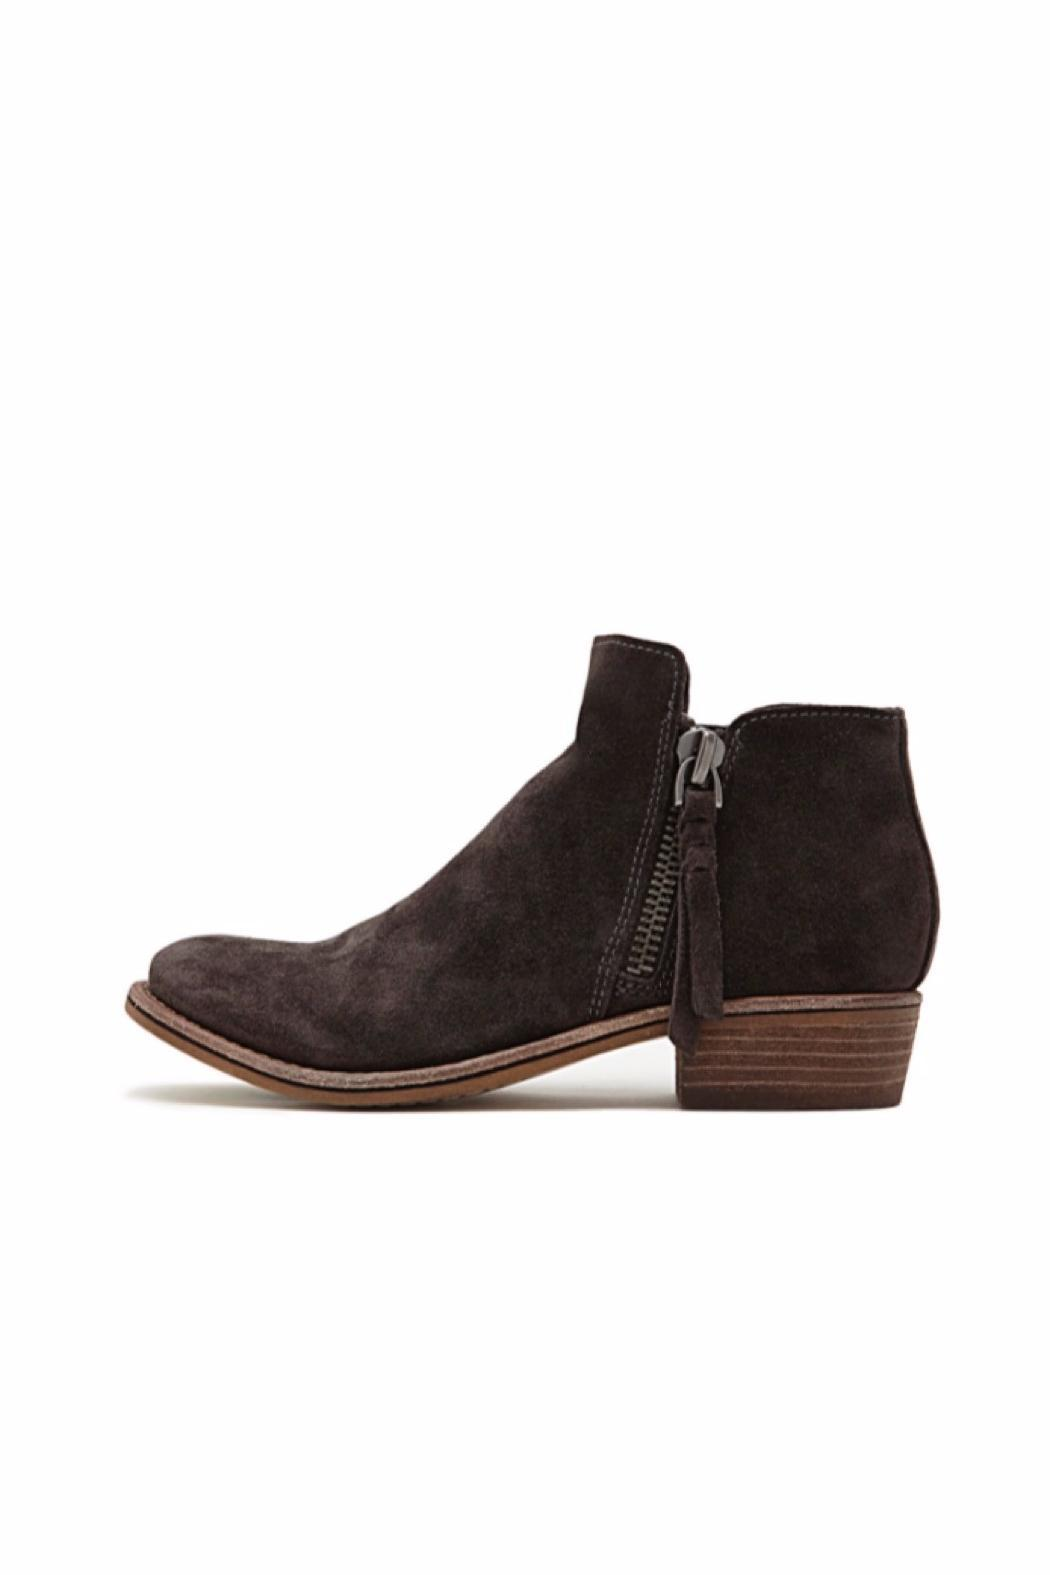 Dolce Vita Sutton Suede Booties - Front Cropped Image